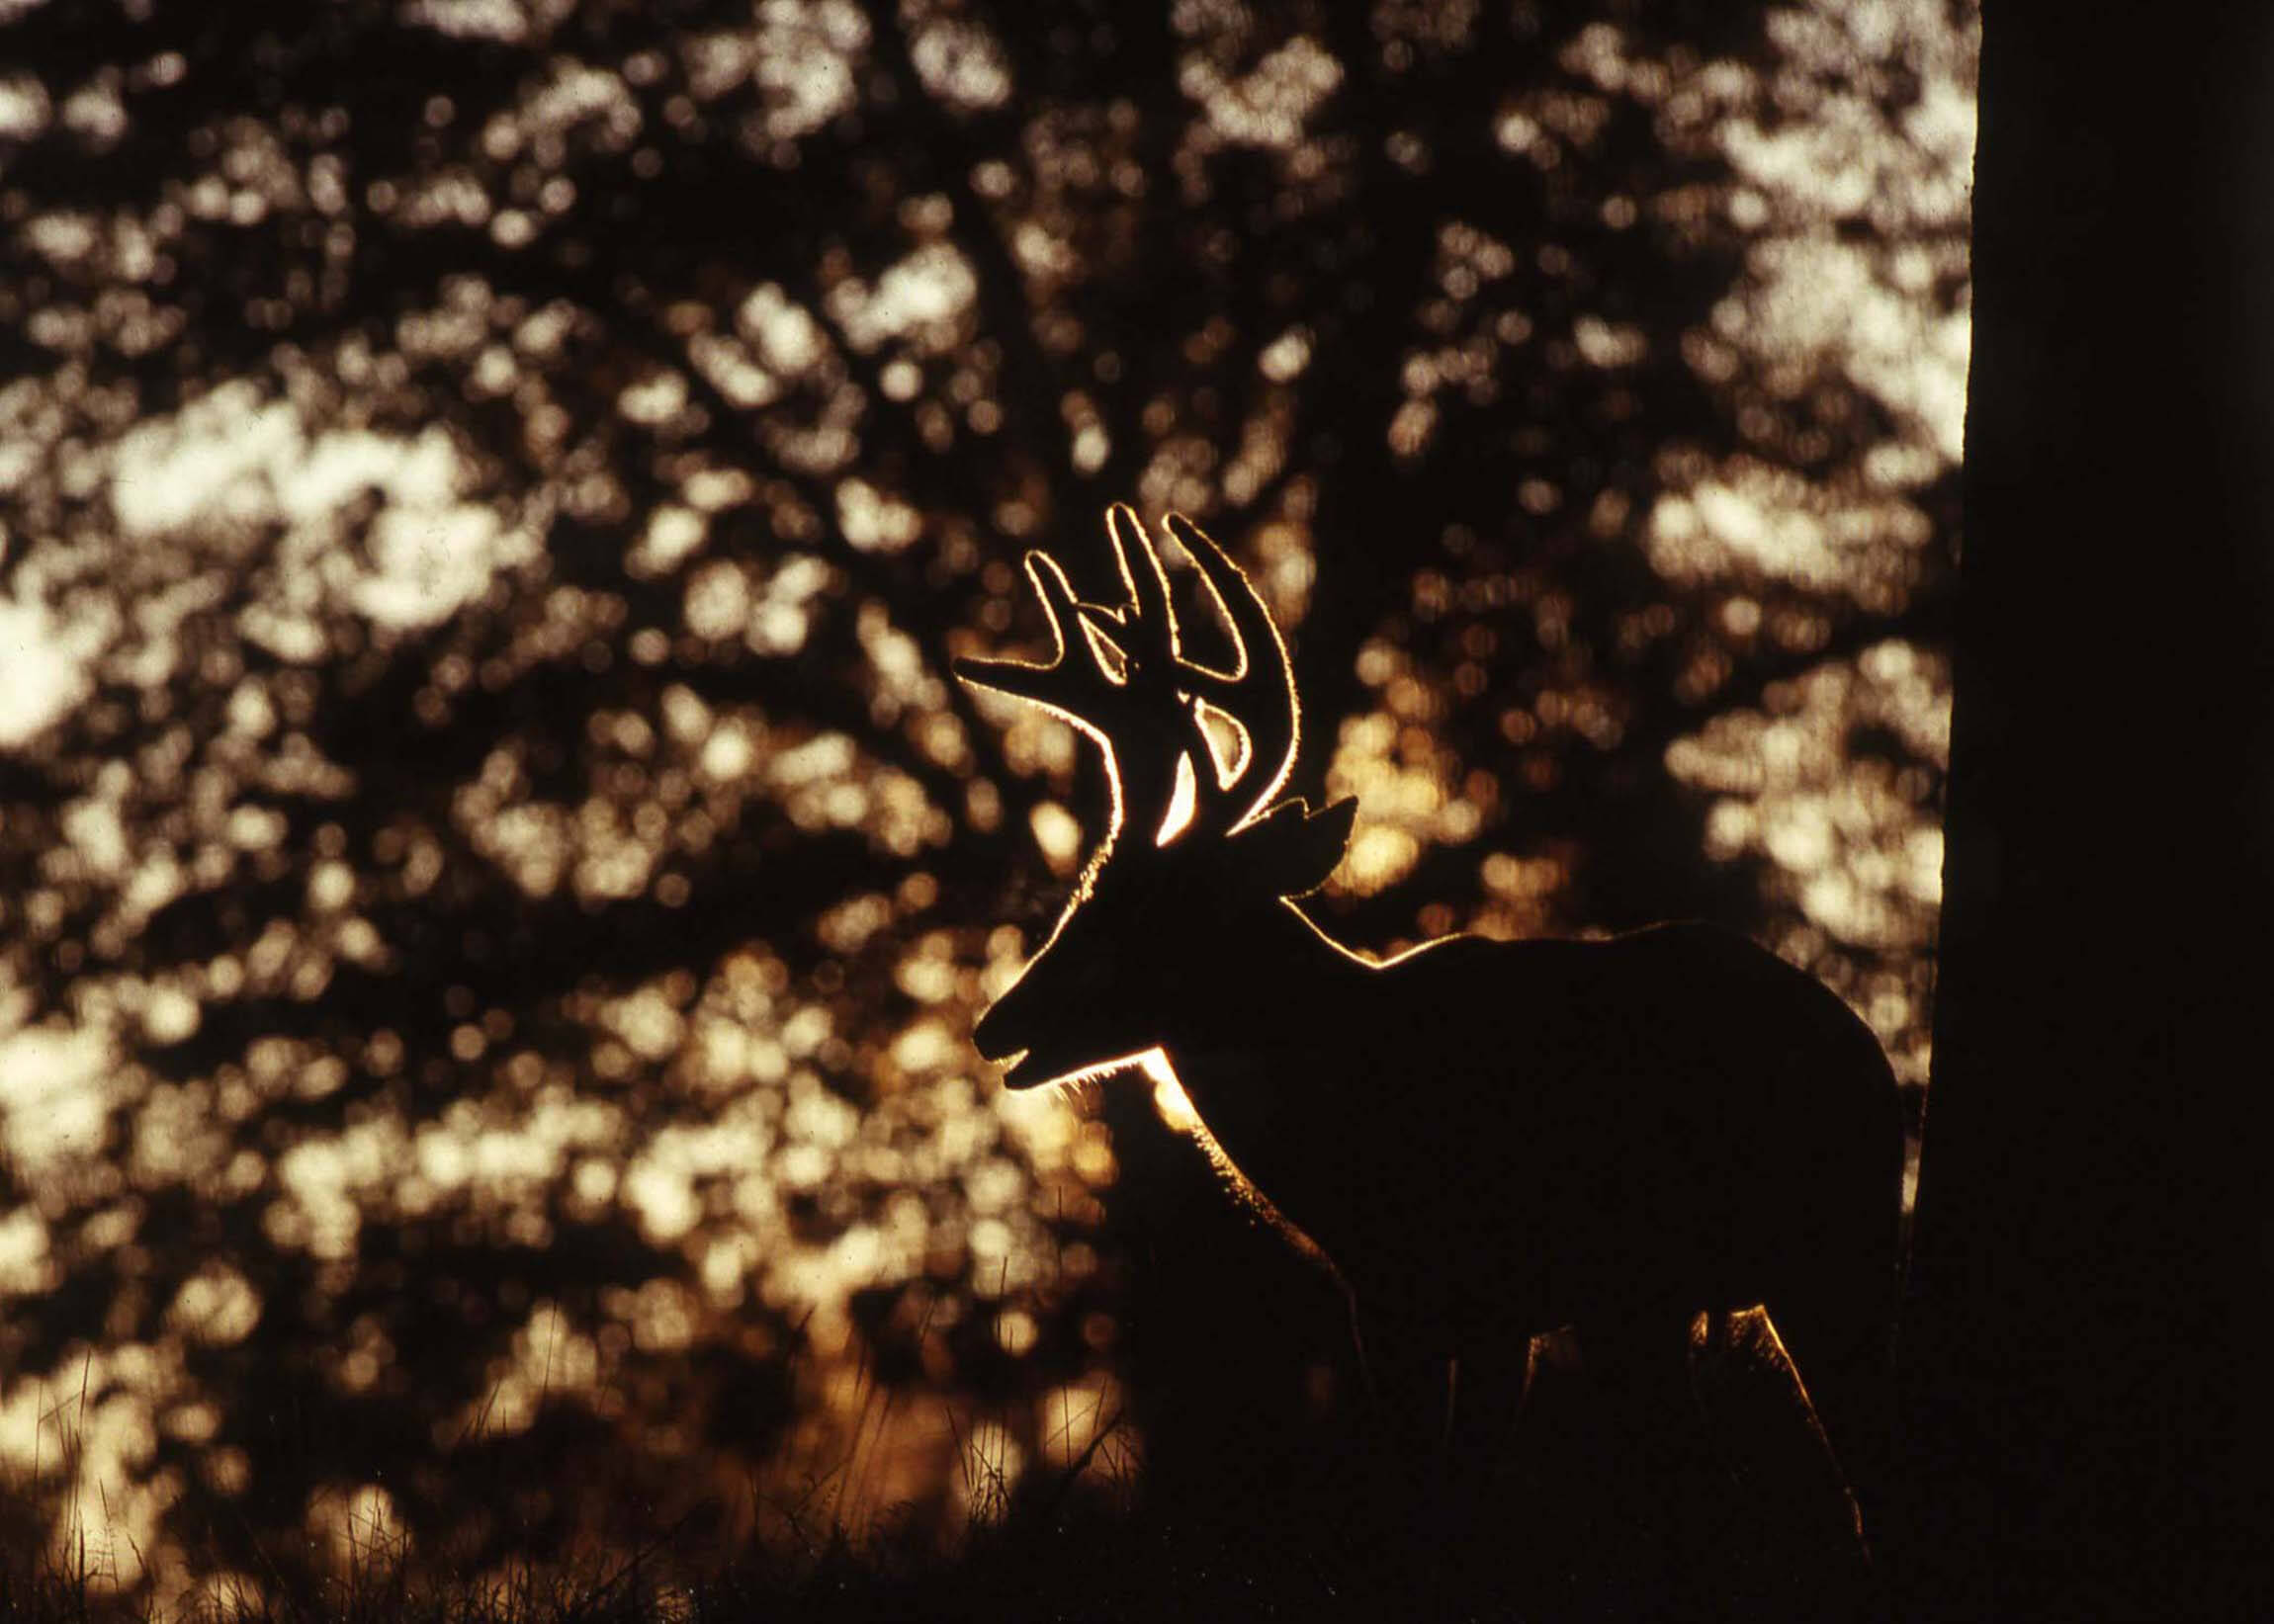 Whitetail buck in velvet is silhouetted by a rising sun.